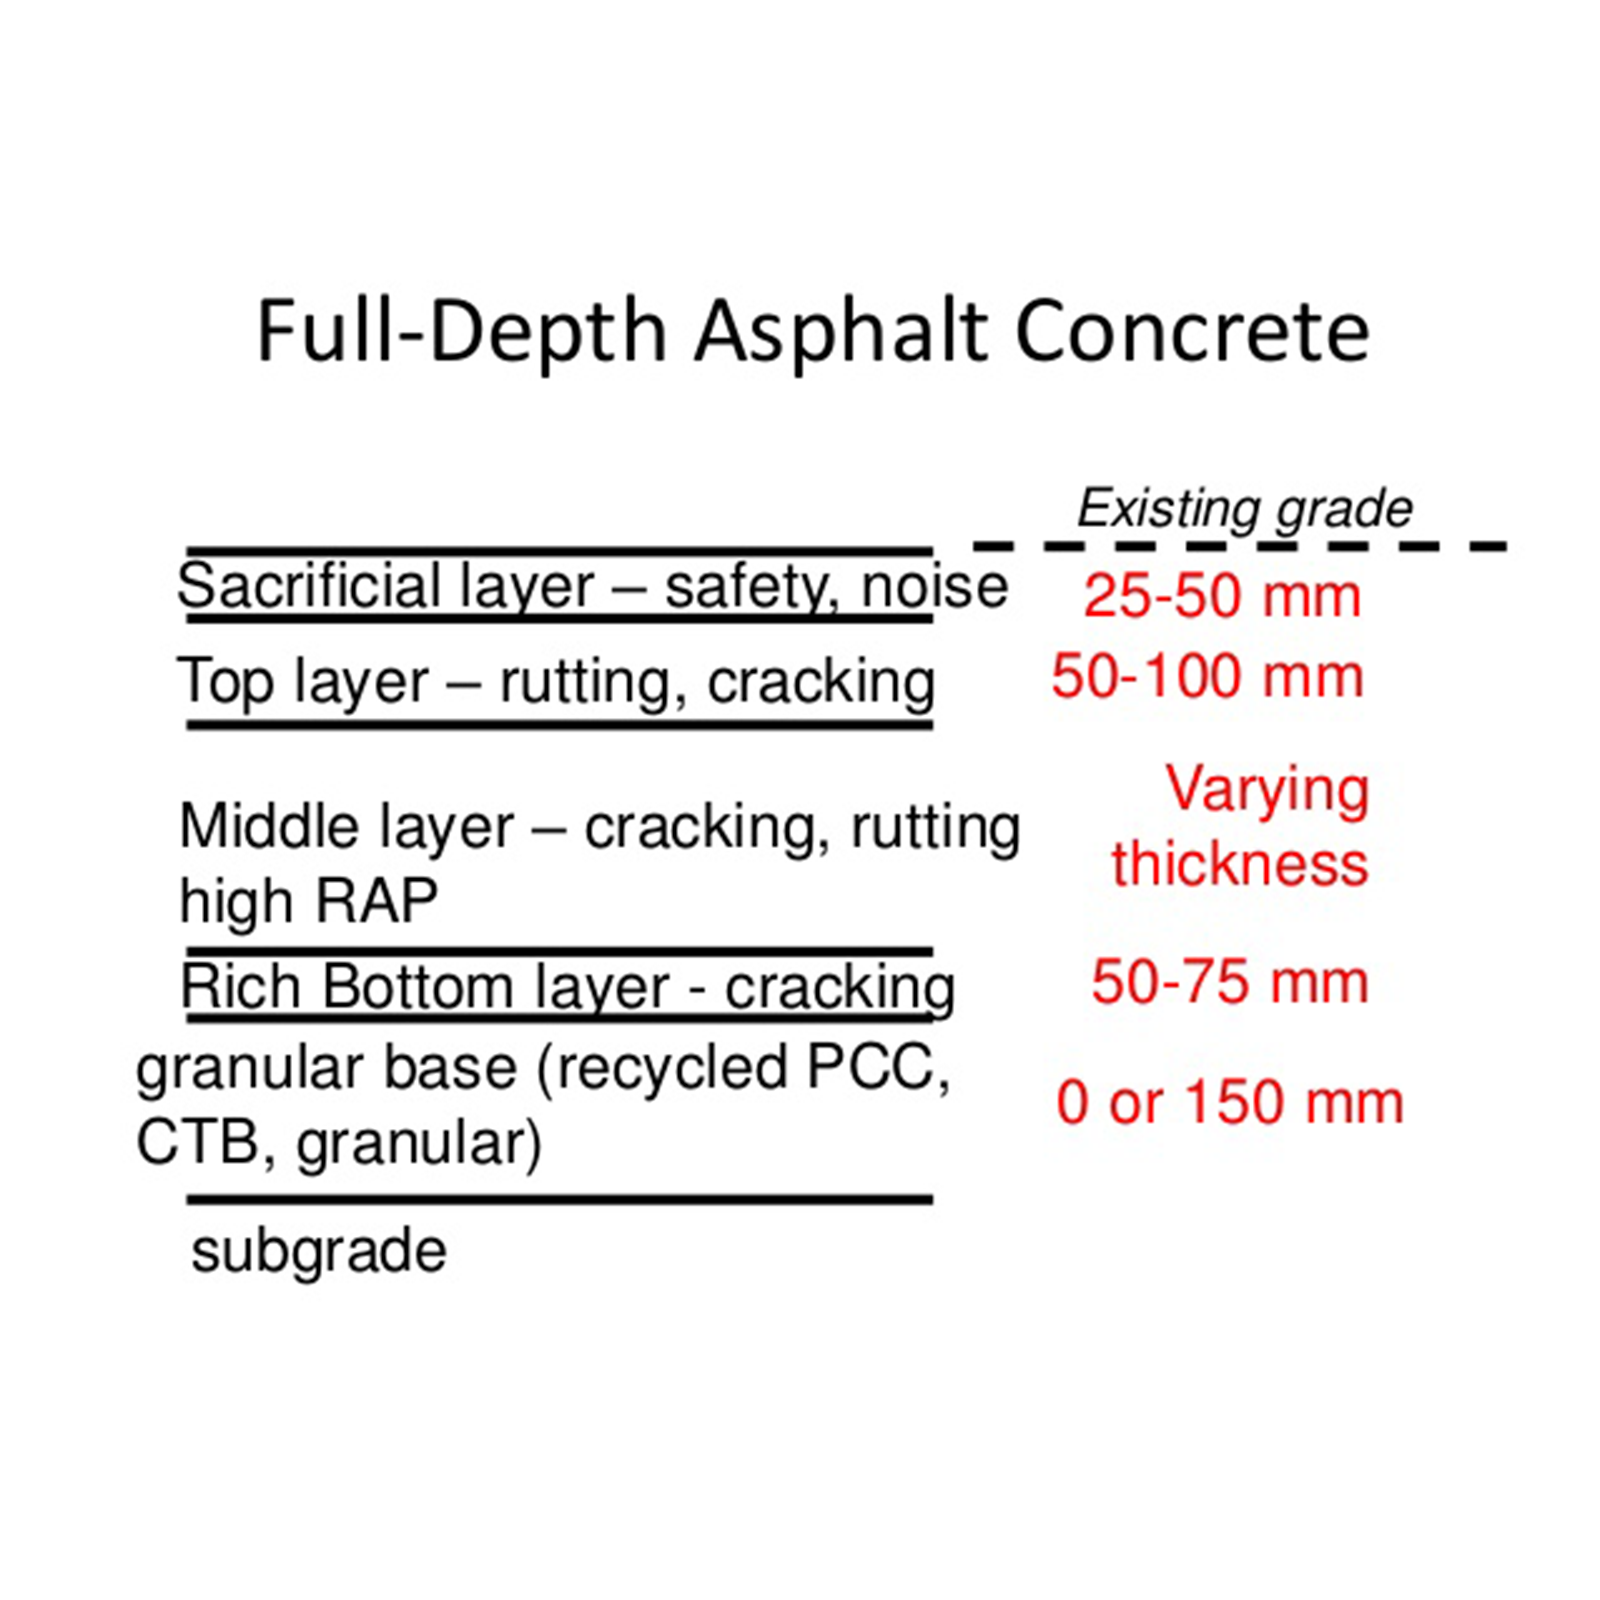 Full-Depth Asphalt Pavement - The term FULL-DEPTH (registered by the Asphalt Institute with the U. S. Patent Office) certifies that the pavement is one in which asphalt mixtures are employed for all courses above the subgrade or improved subgrade. A Full-Depth asphalt pavement is placed directly on the prepared subgrade.